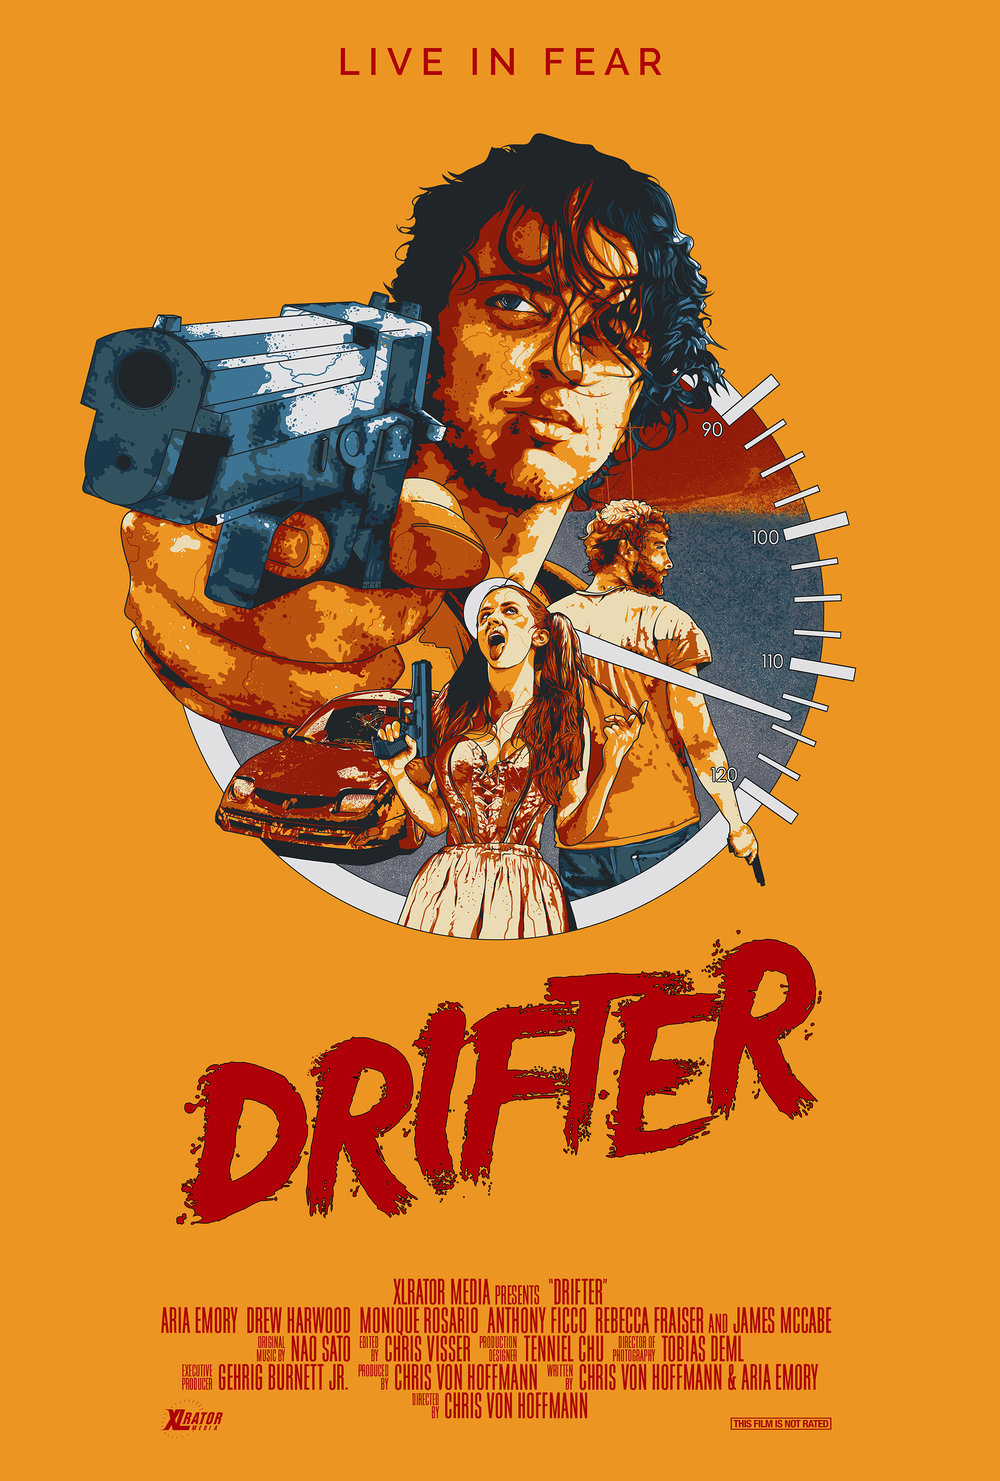 Drifter Domestic One Sheet - Film and TV - Jonathan B Perez - cREAtive Castle Studios.jpg